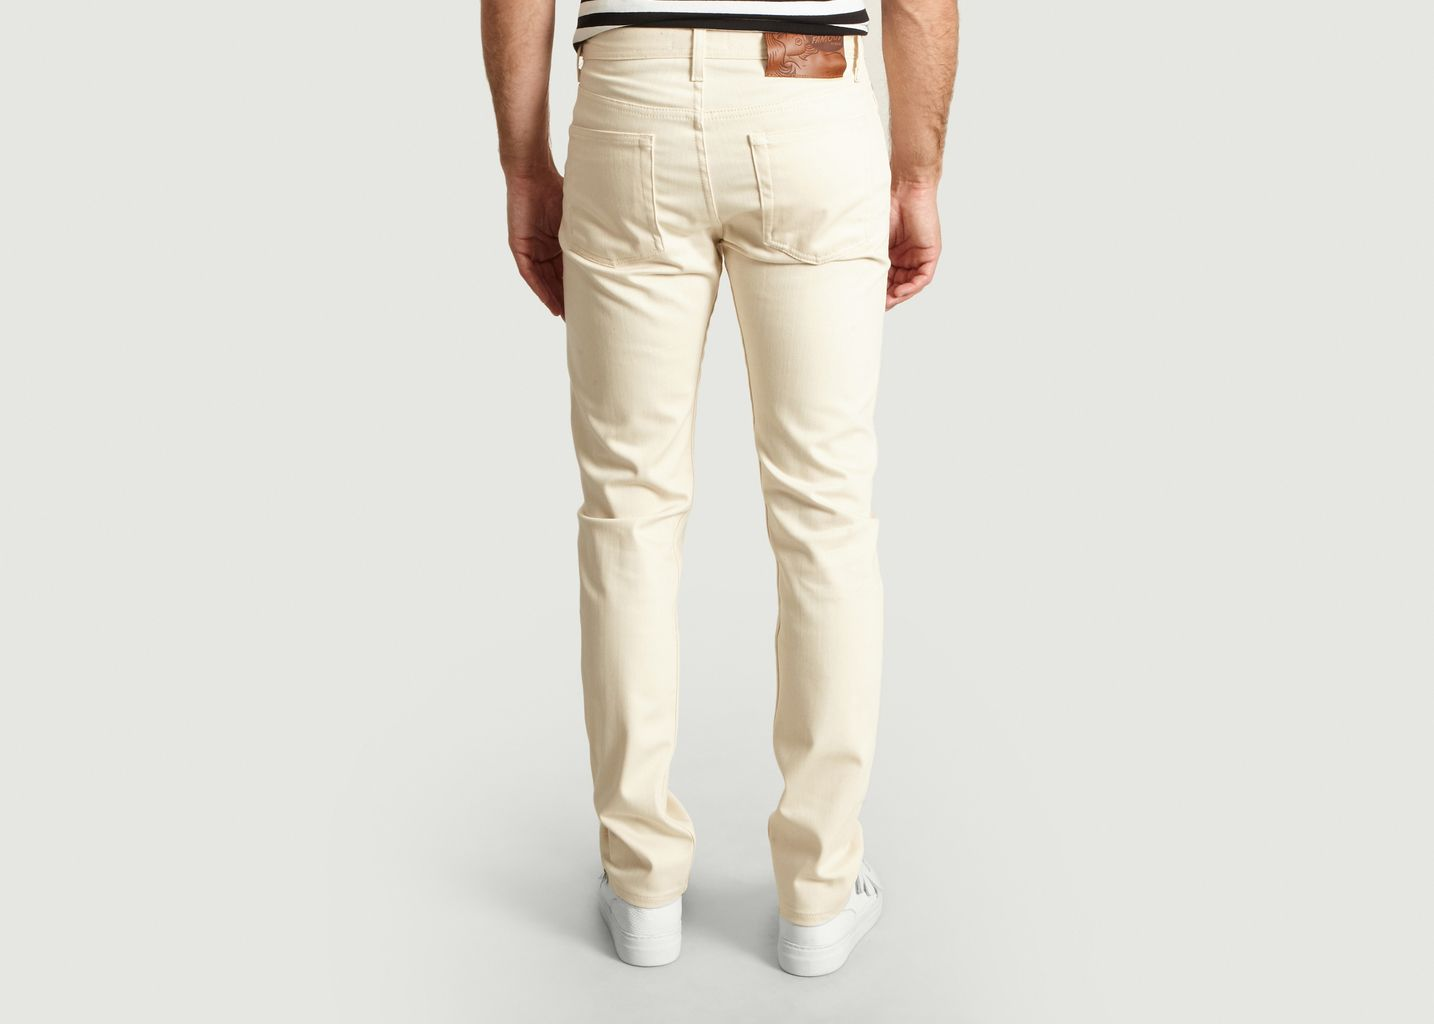 Jean Weird Guy Natural Seed - Naked and Famous